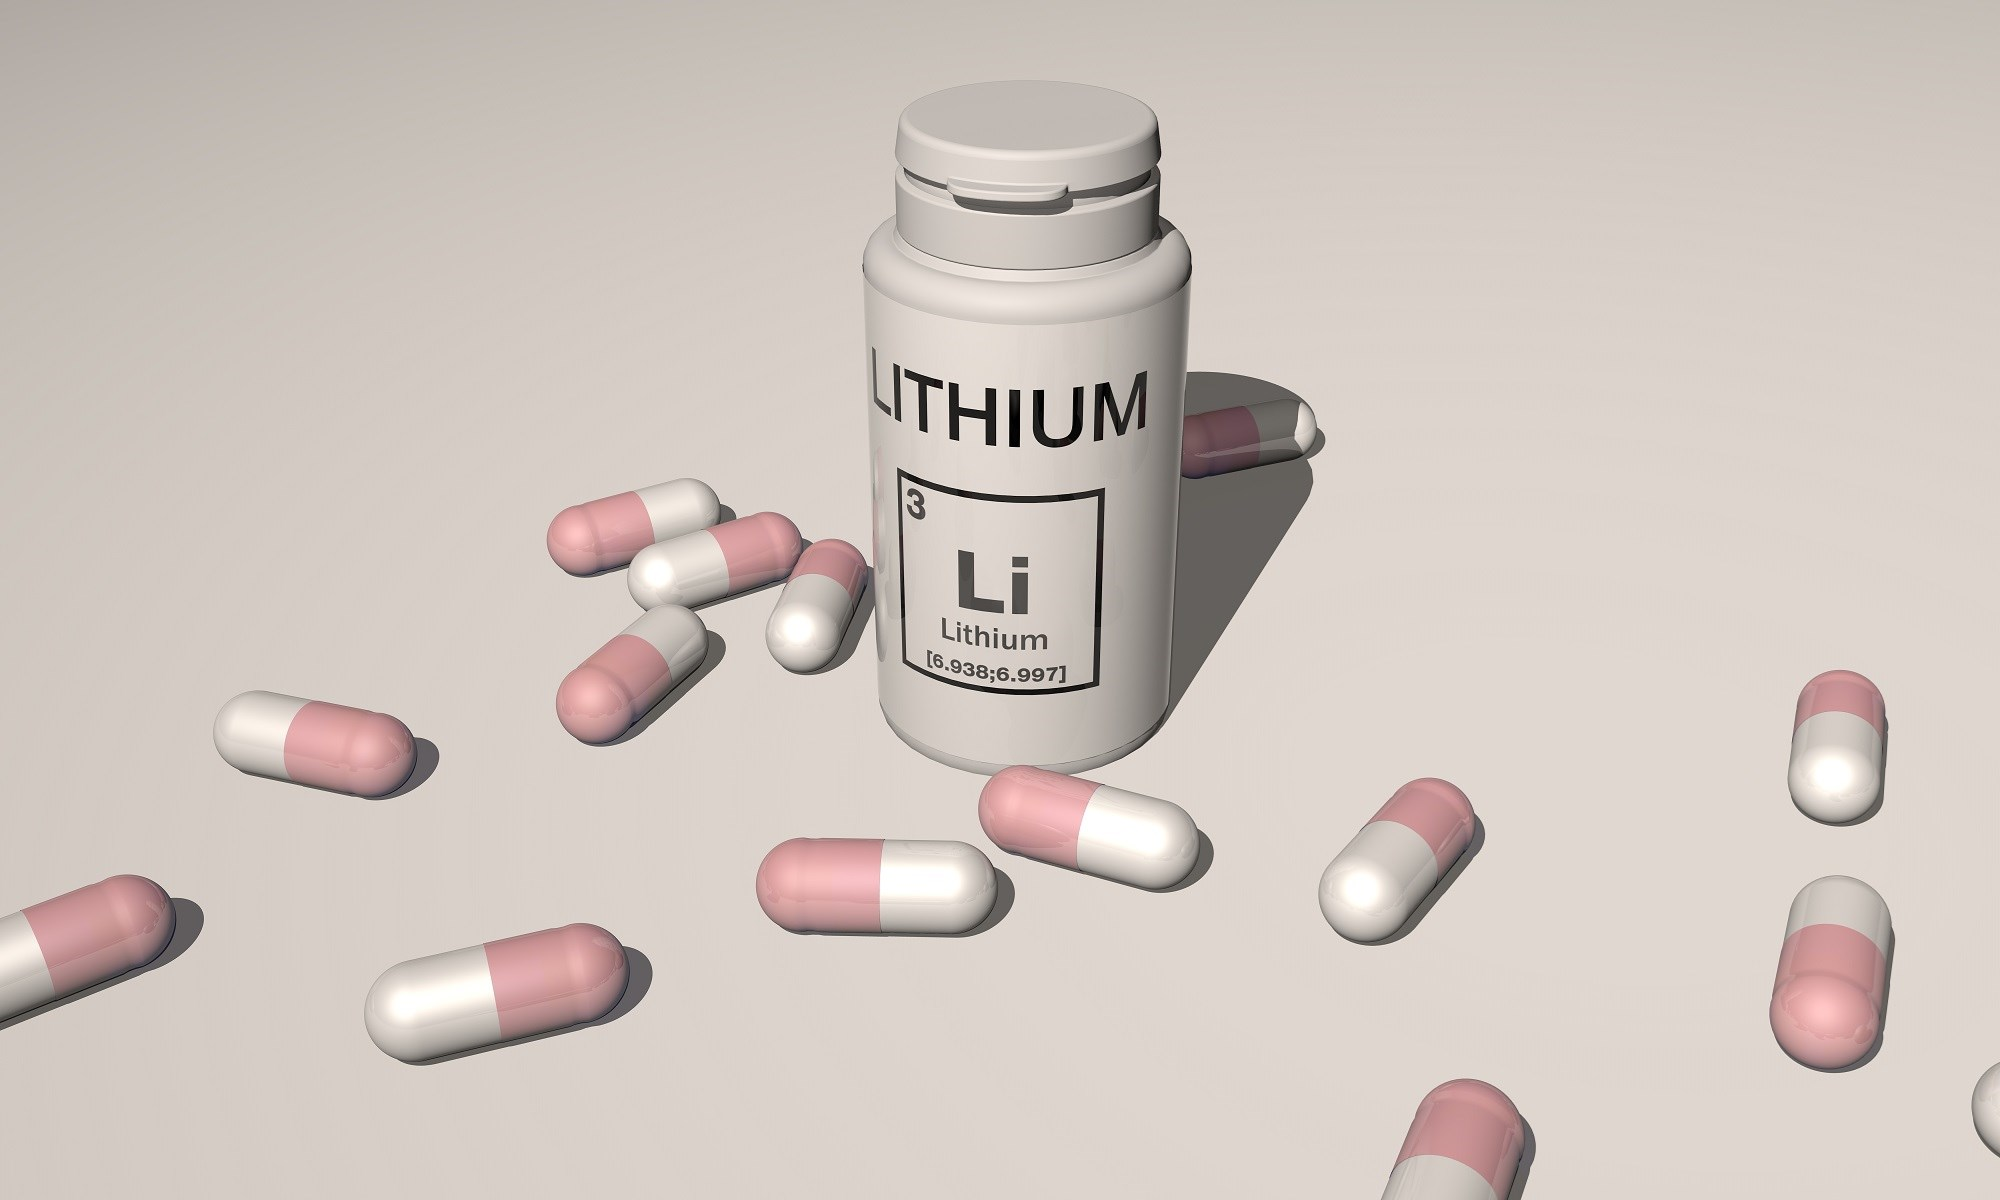 Lithium monotherapy may be safe and effective for treating acute mania and preventing mood instability in children and adolescents with bipolar disorder.